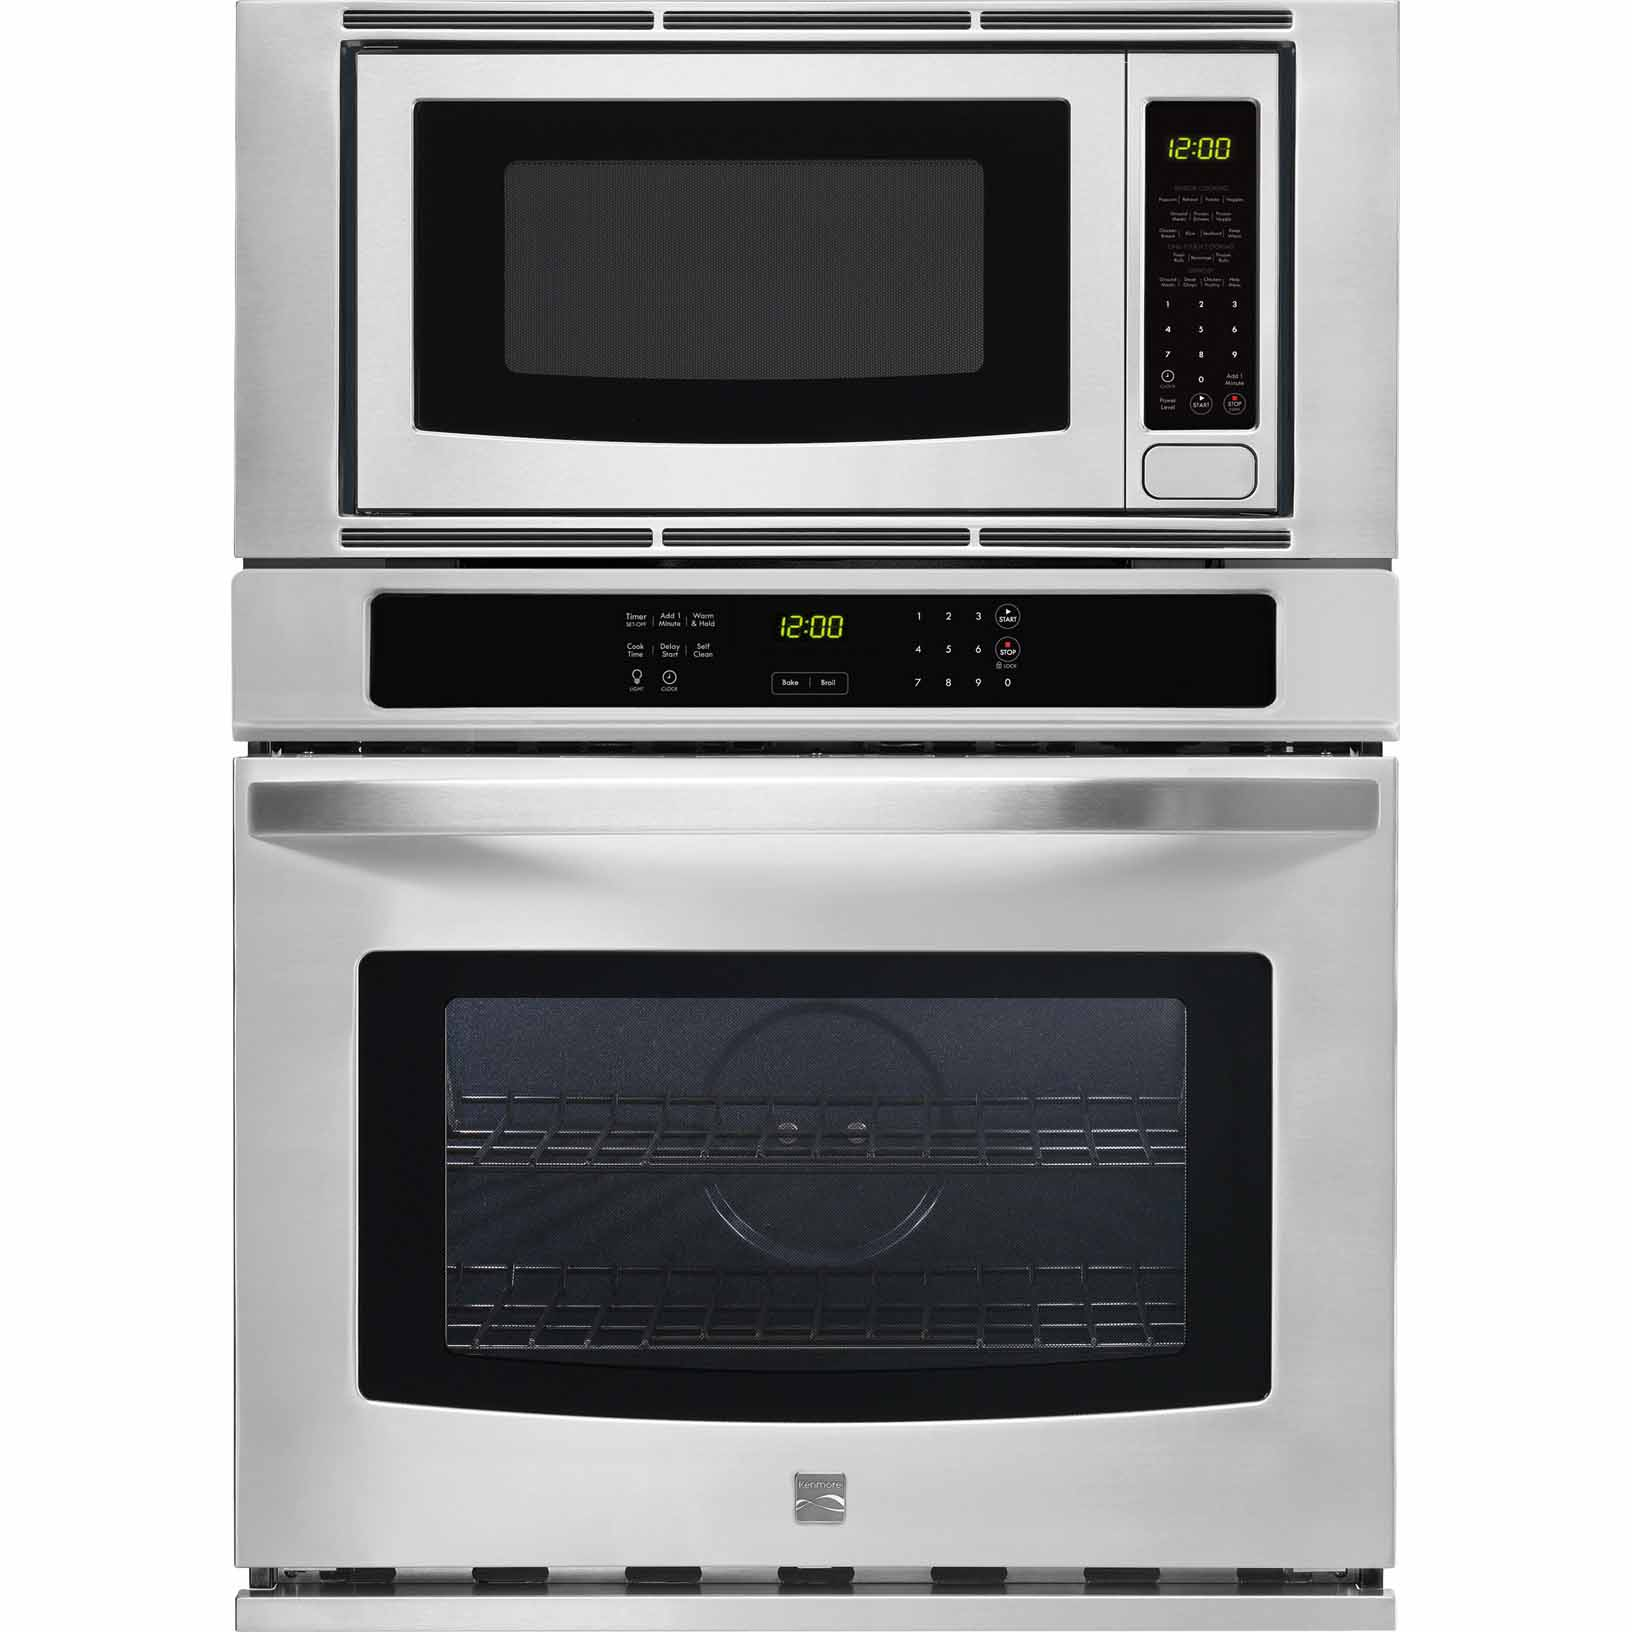 Kenmore 49603 27 Electric Combination Wall Oven - Stainless Steel